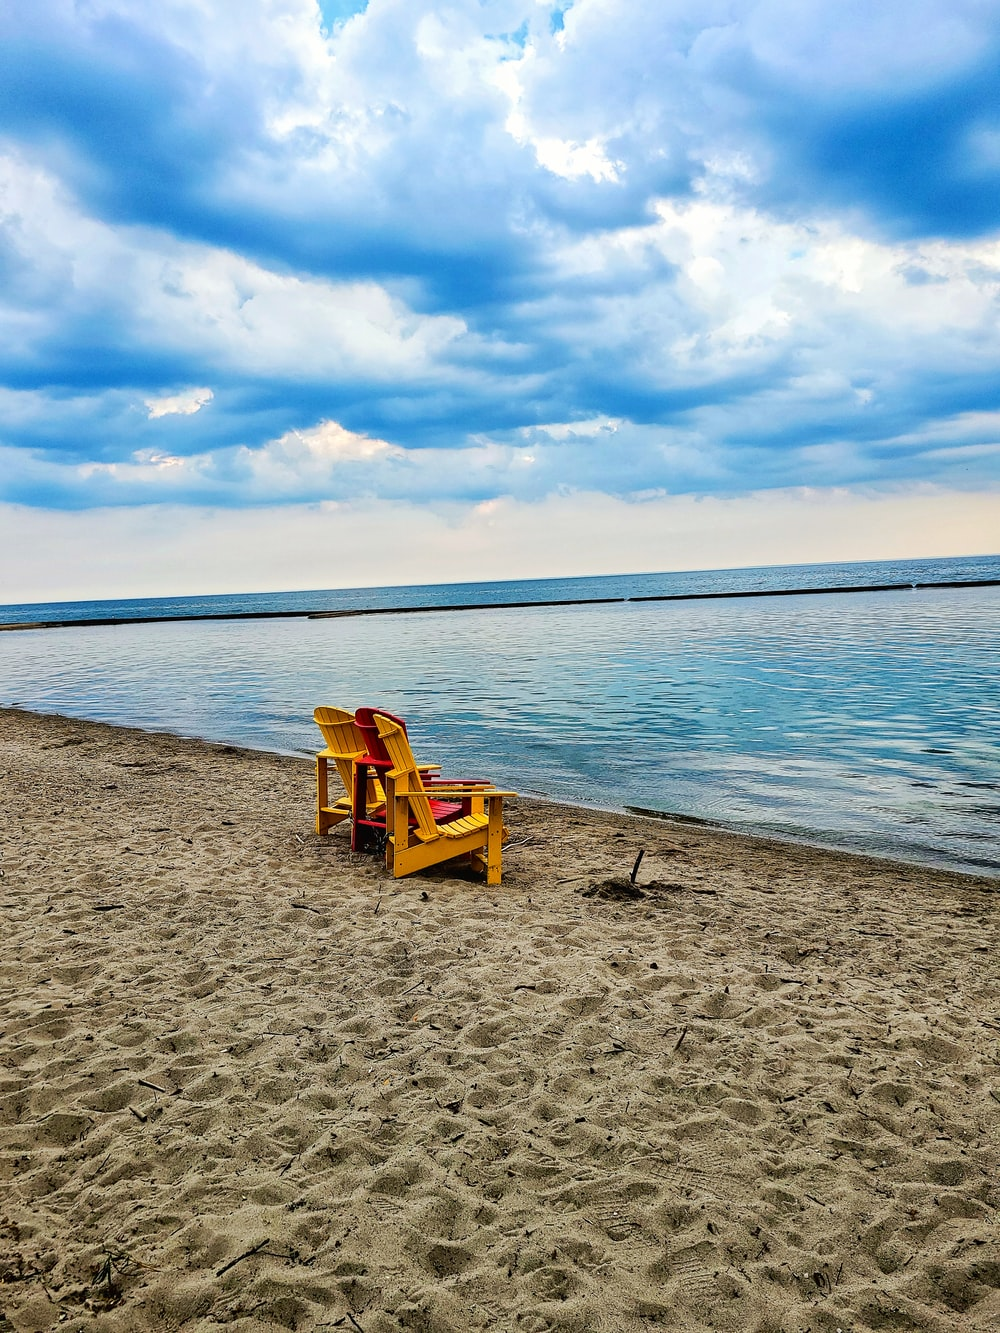 brown wooden chair on beach during daytime